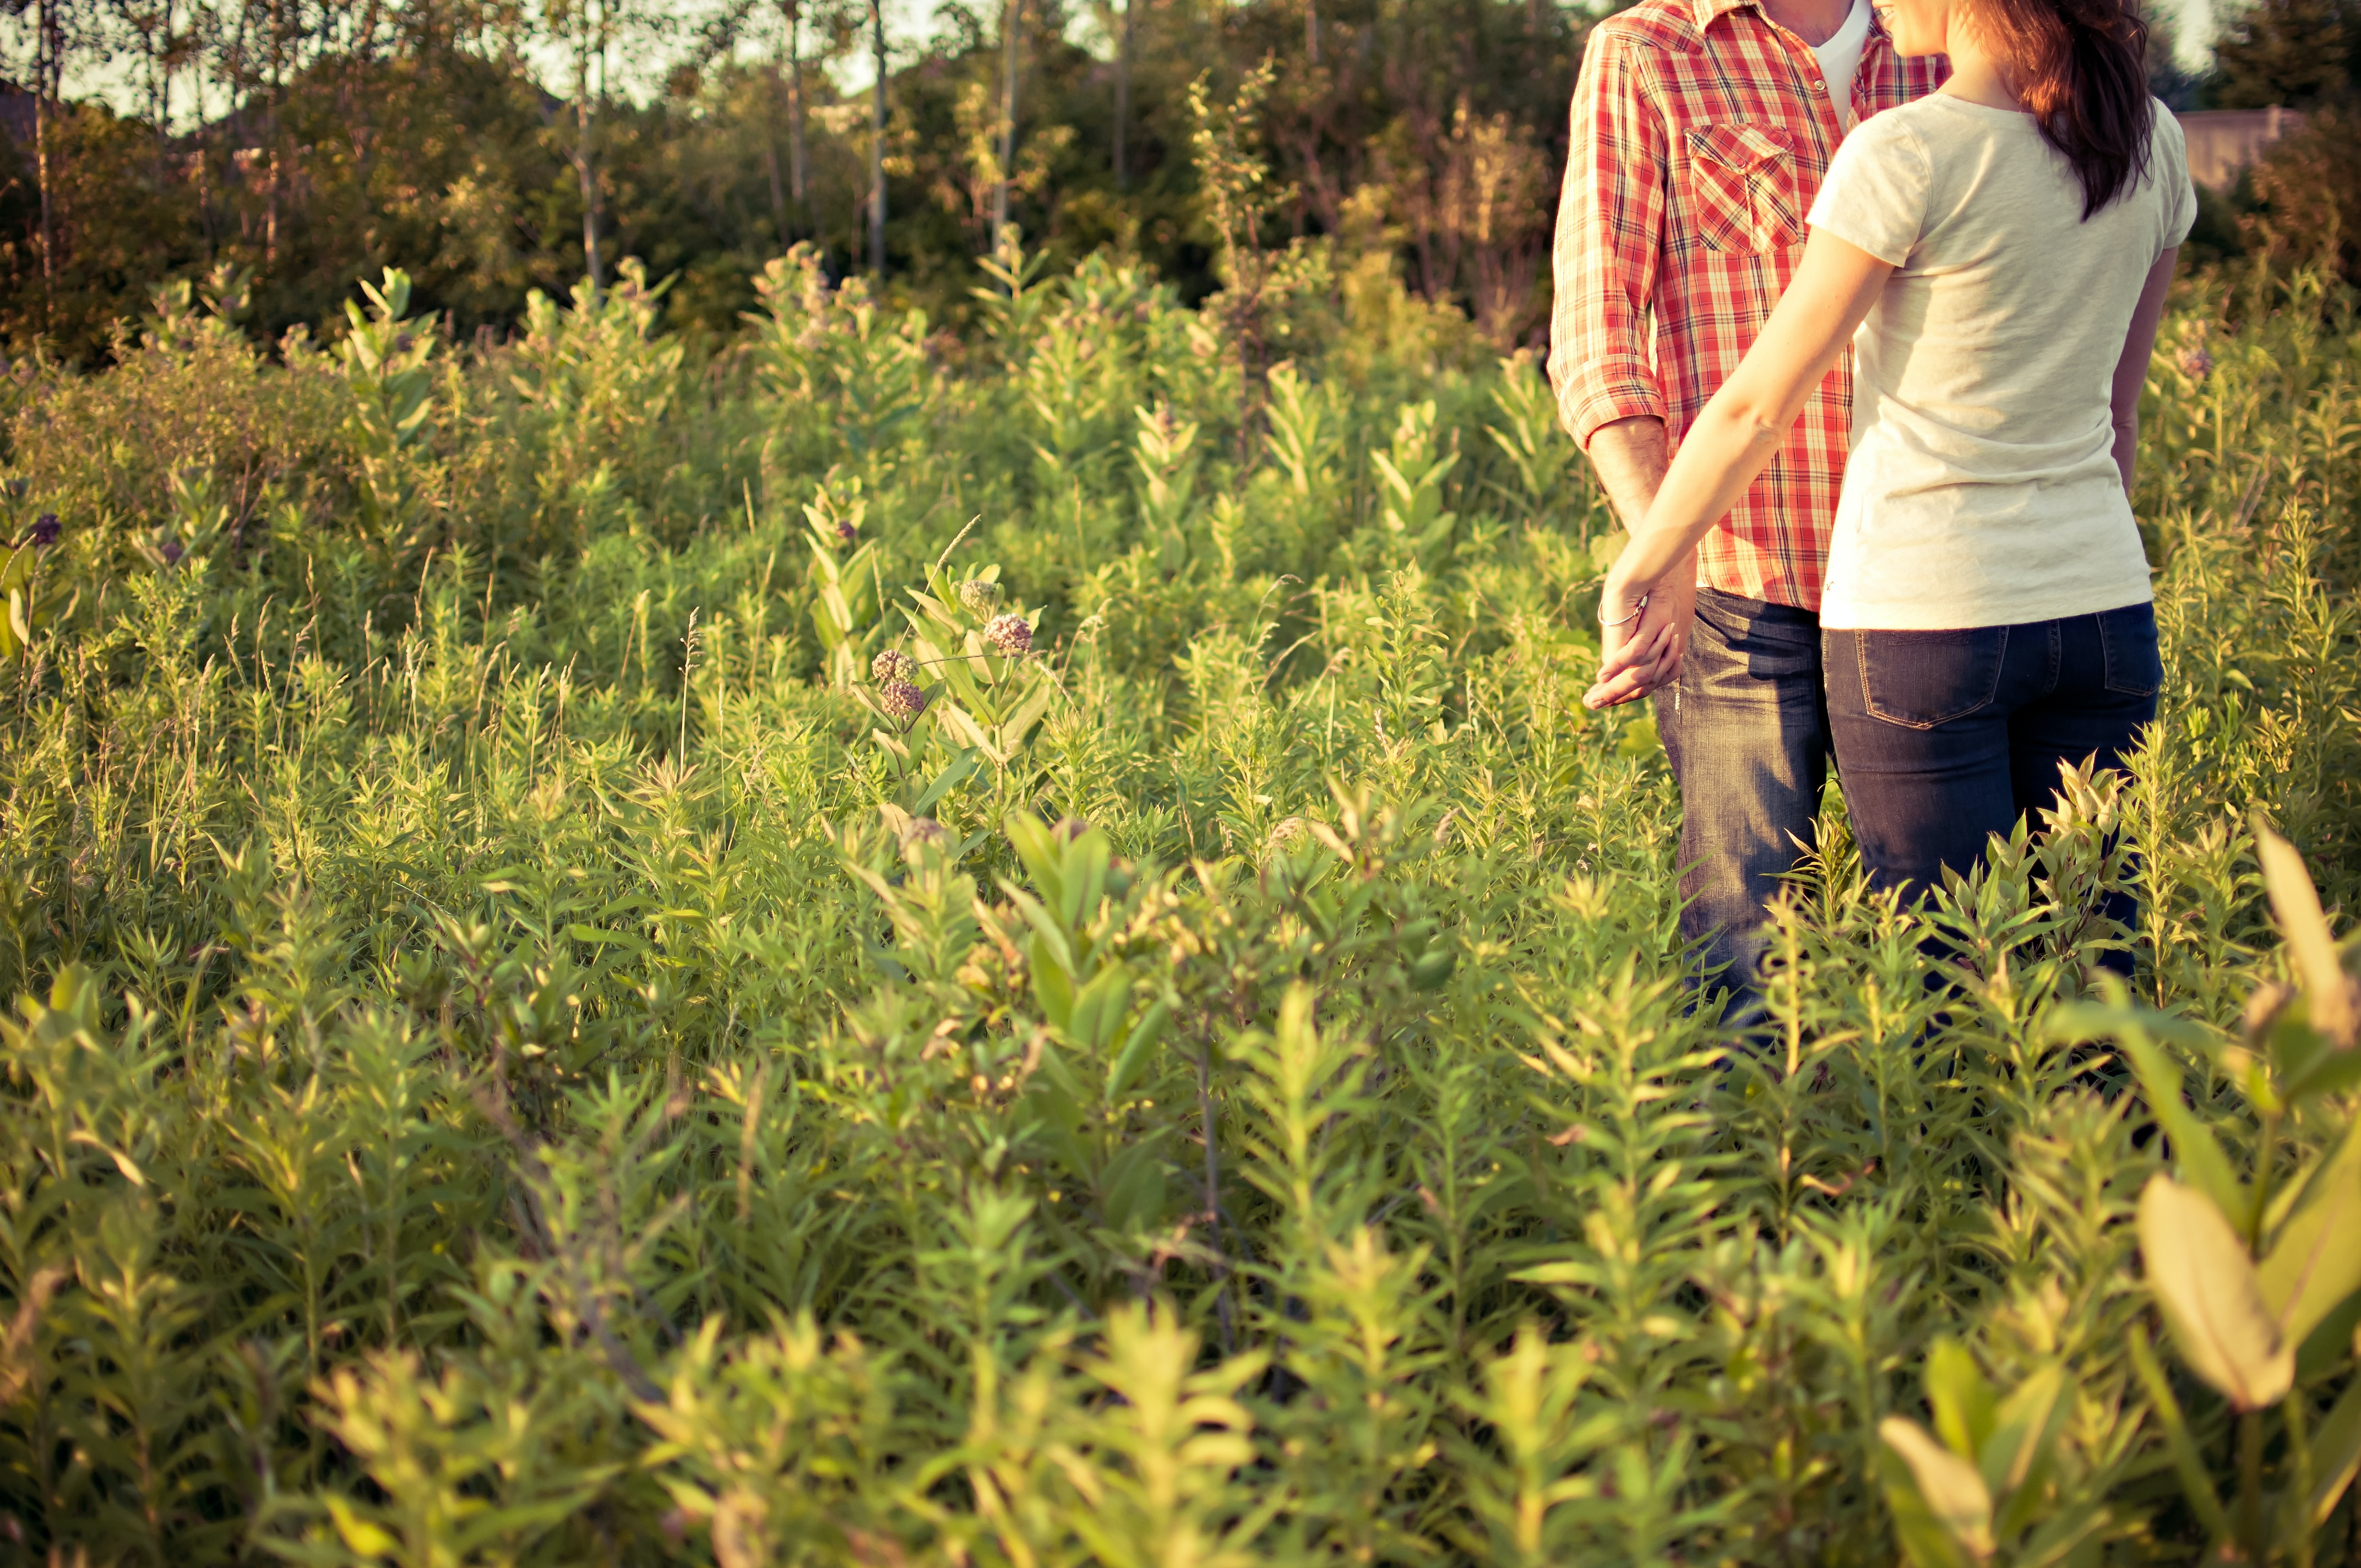 Couple together in a field of wild plants in soft sunlight